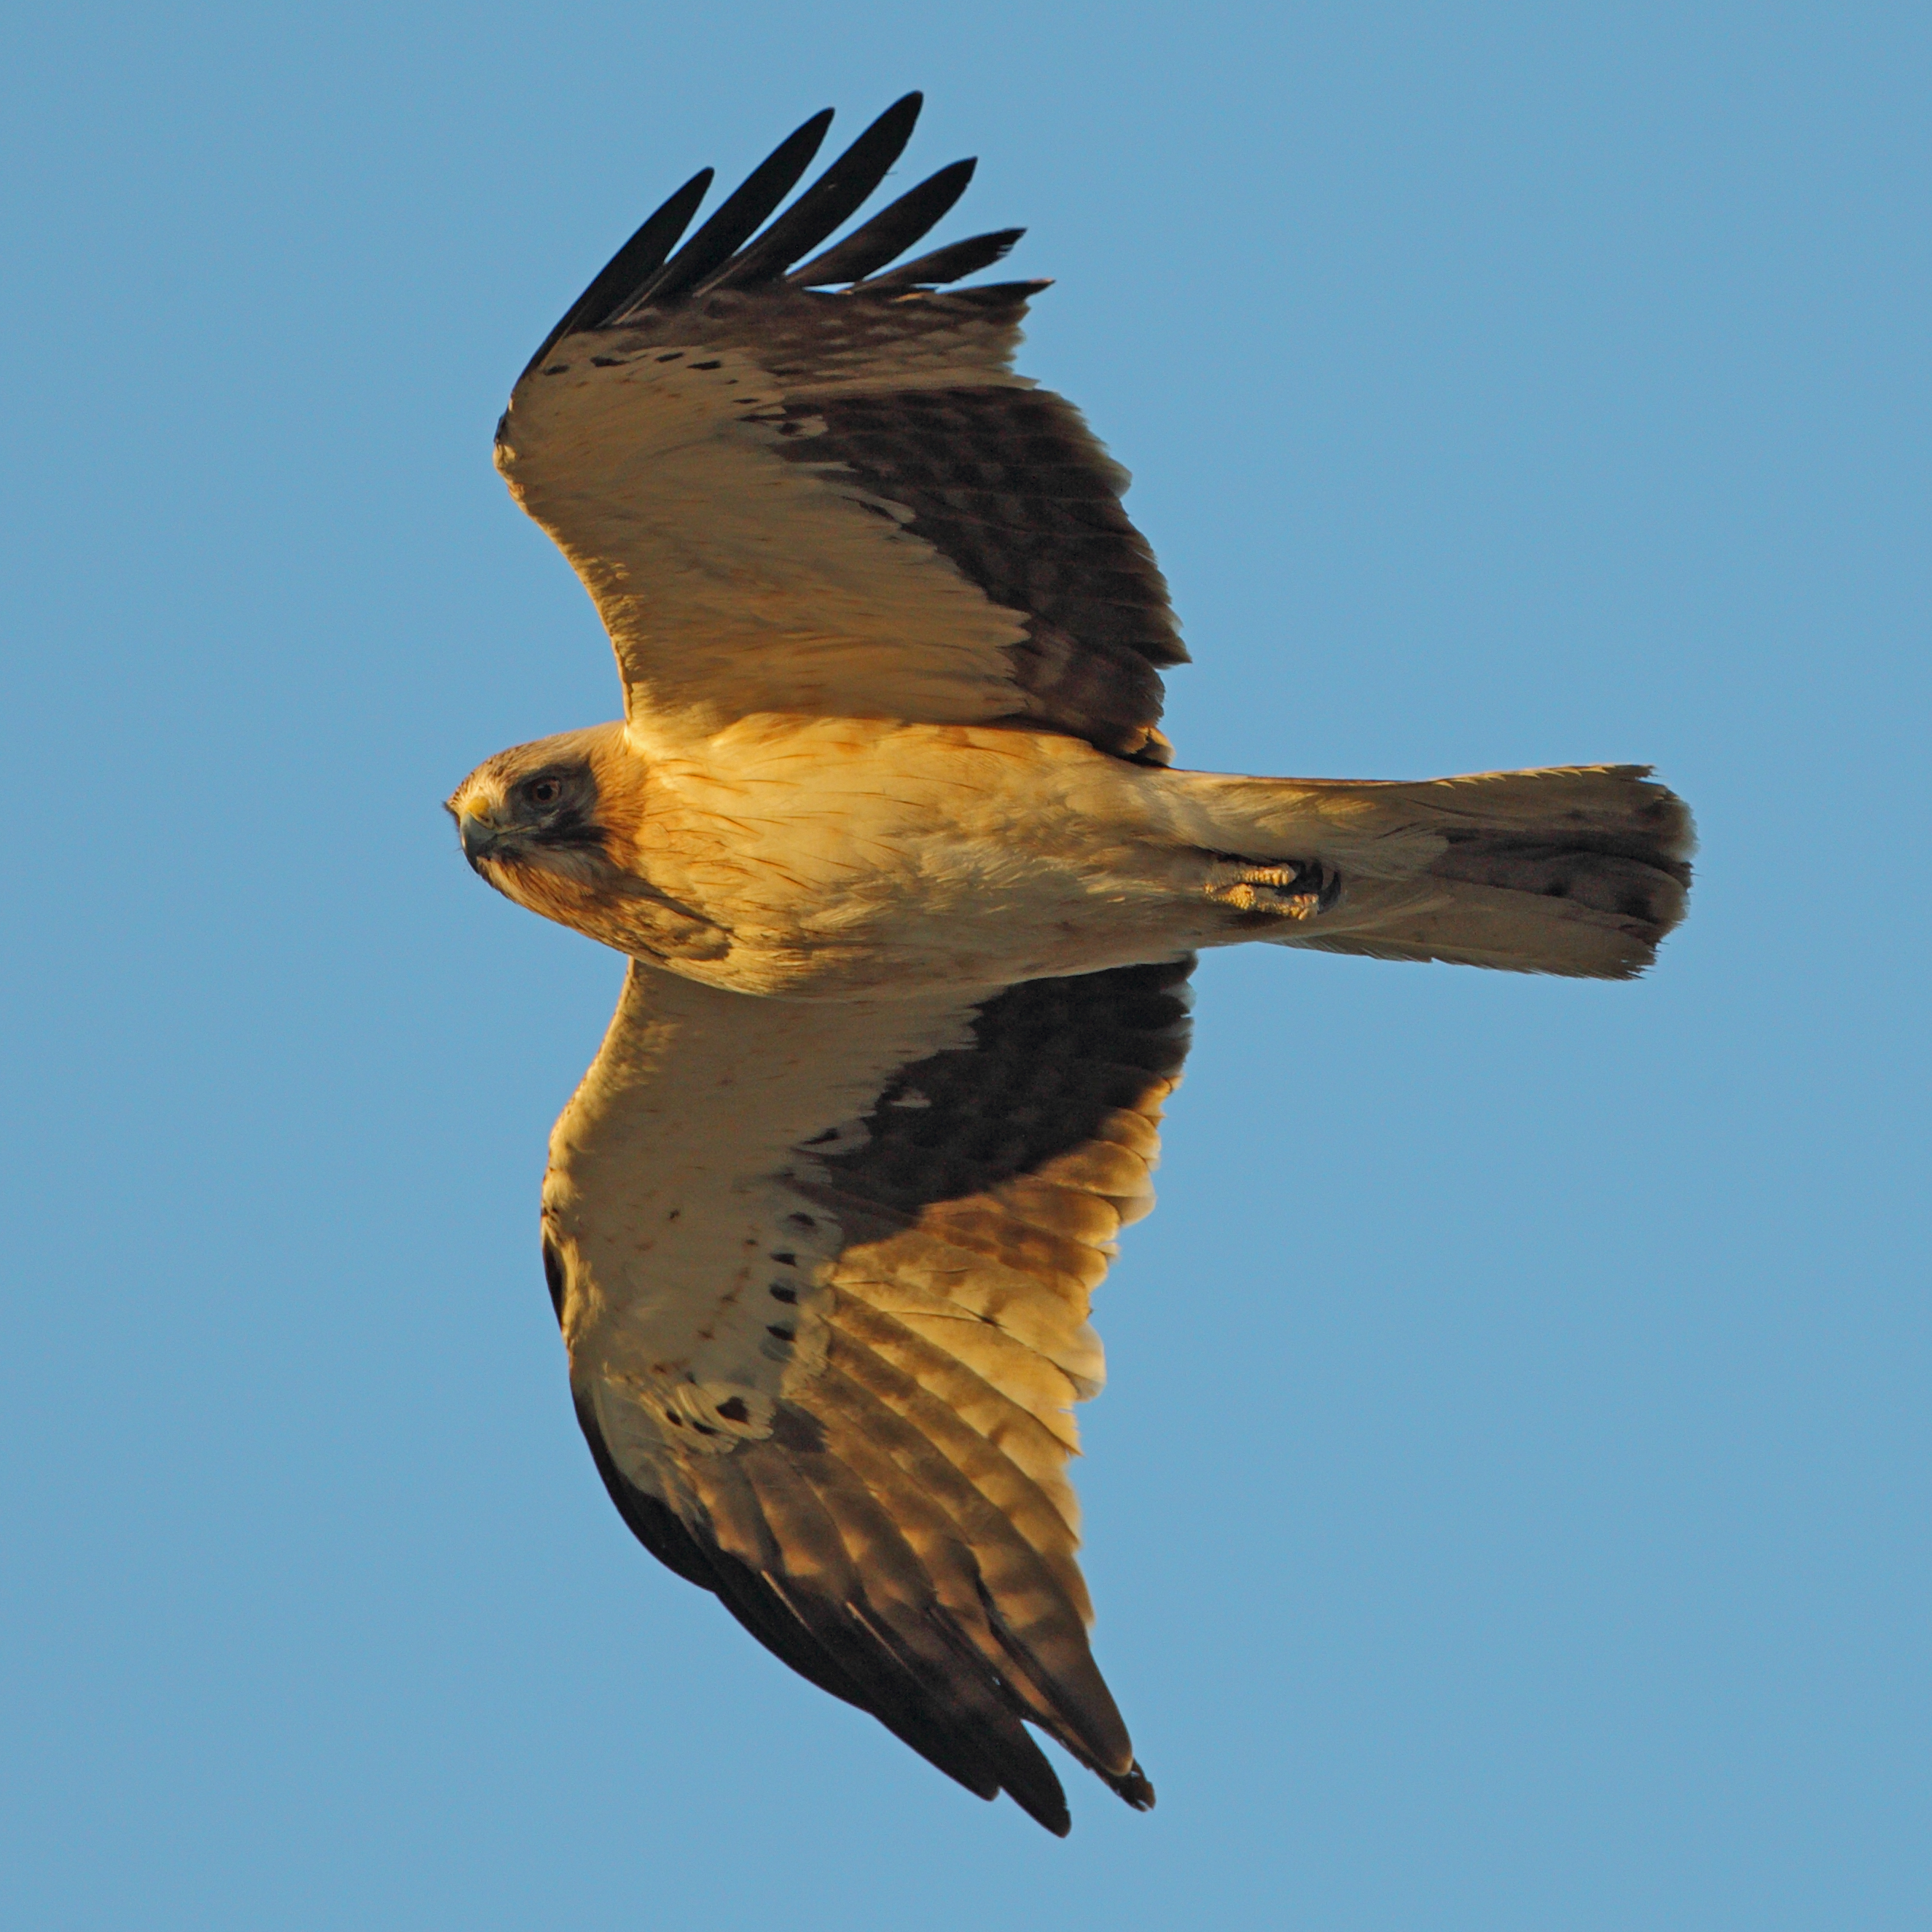 File:Booted Eagle.jpg - Wikimedia Commons